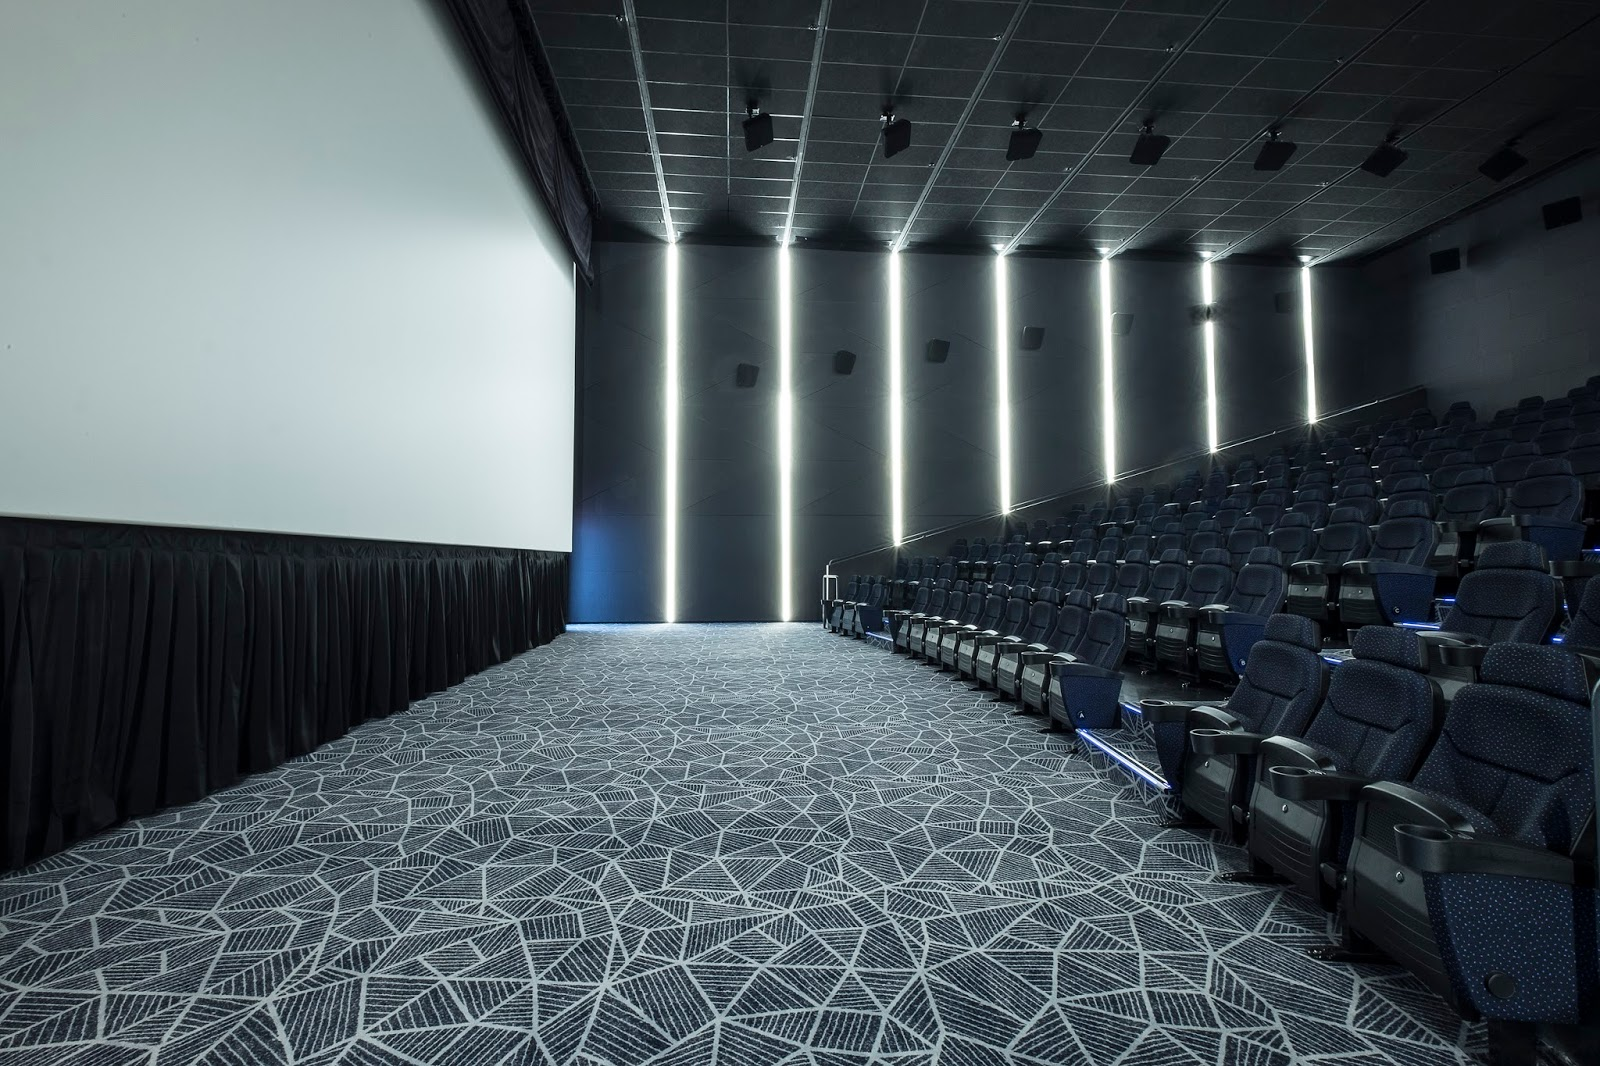 vista posture chair blue accent with ottoman mx4d motion efx theater only at cinemas aci girl